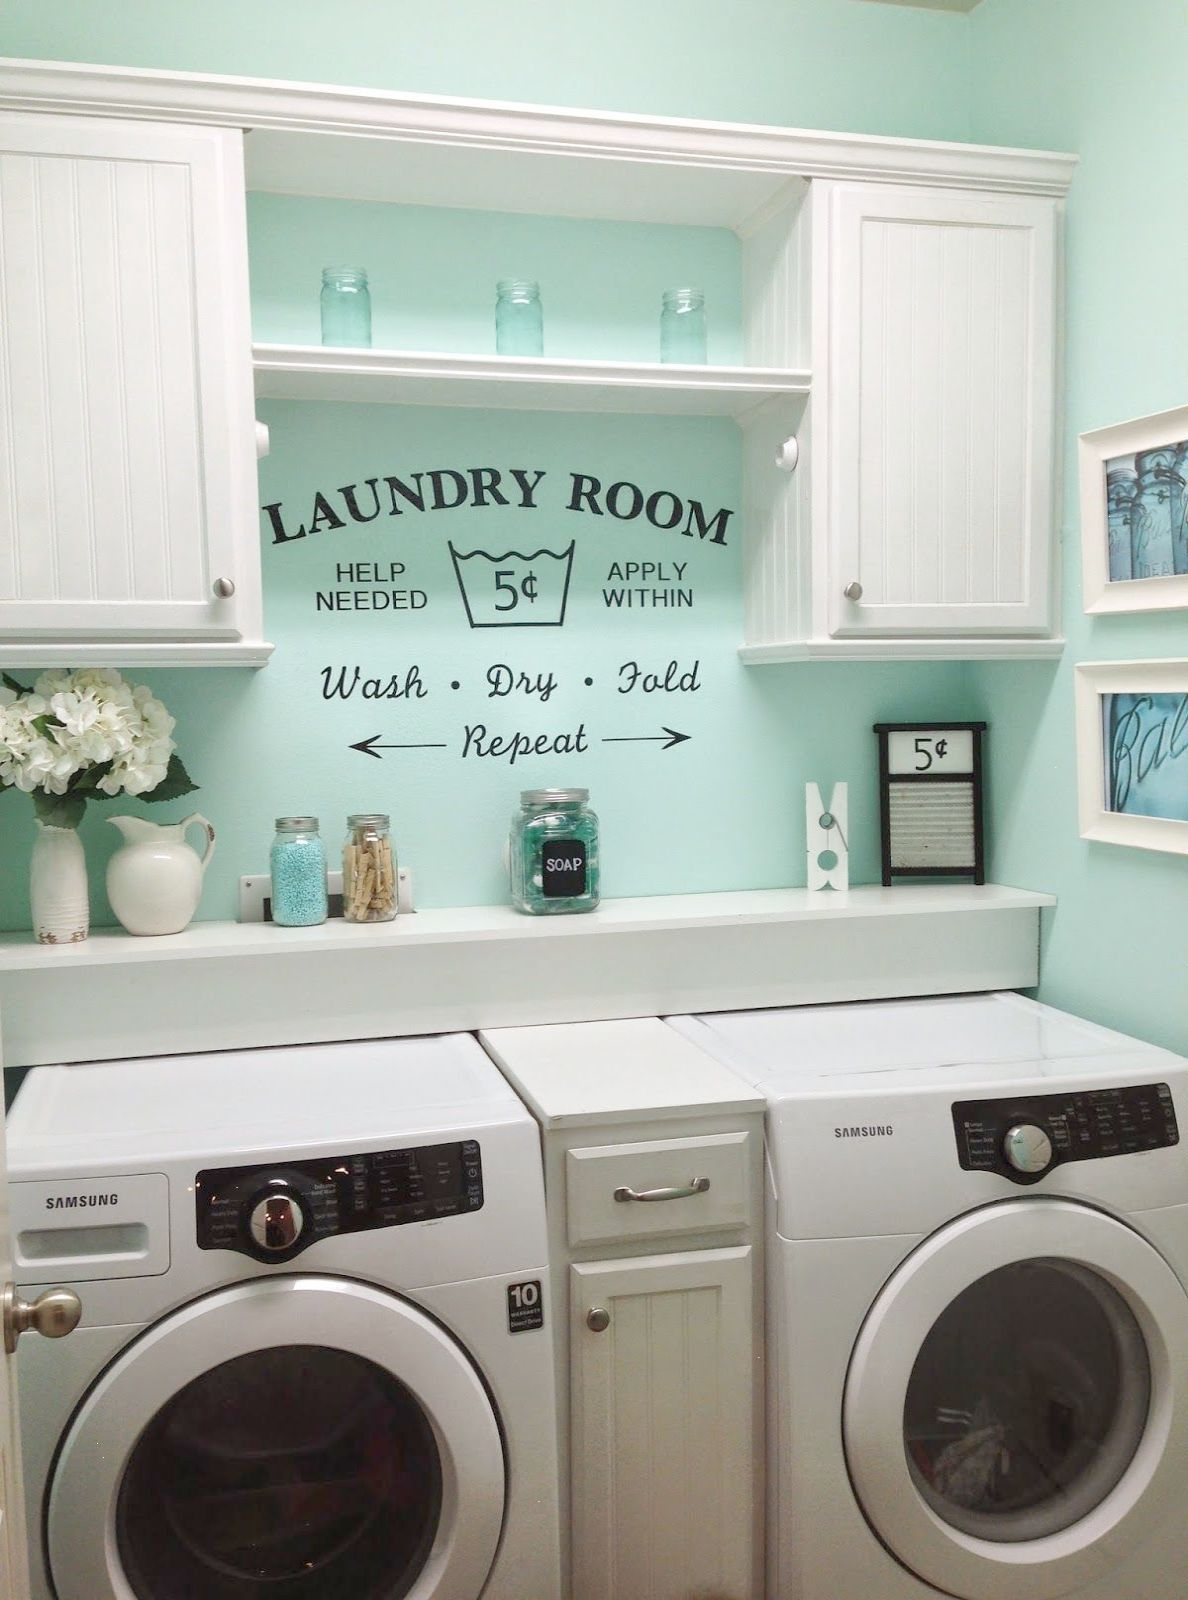 Rustic shabby chic laundry room vintage vinyl decal small laundry rustic shabby chic laundry room vintage vinyl decal small laundry room solutioingenieria Choice Image